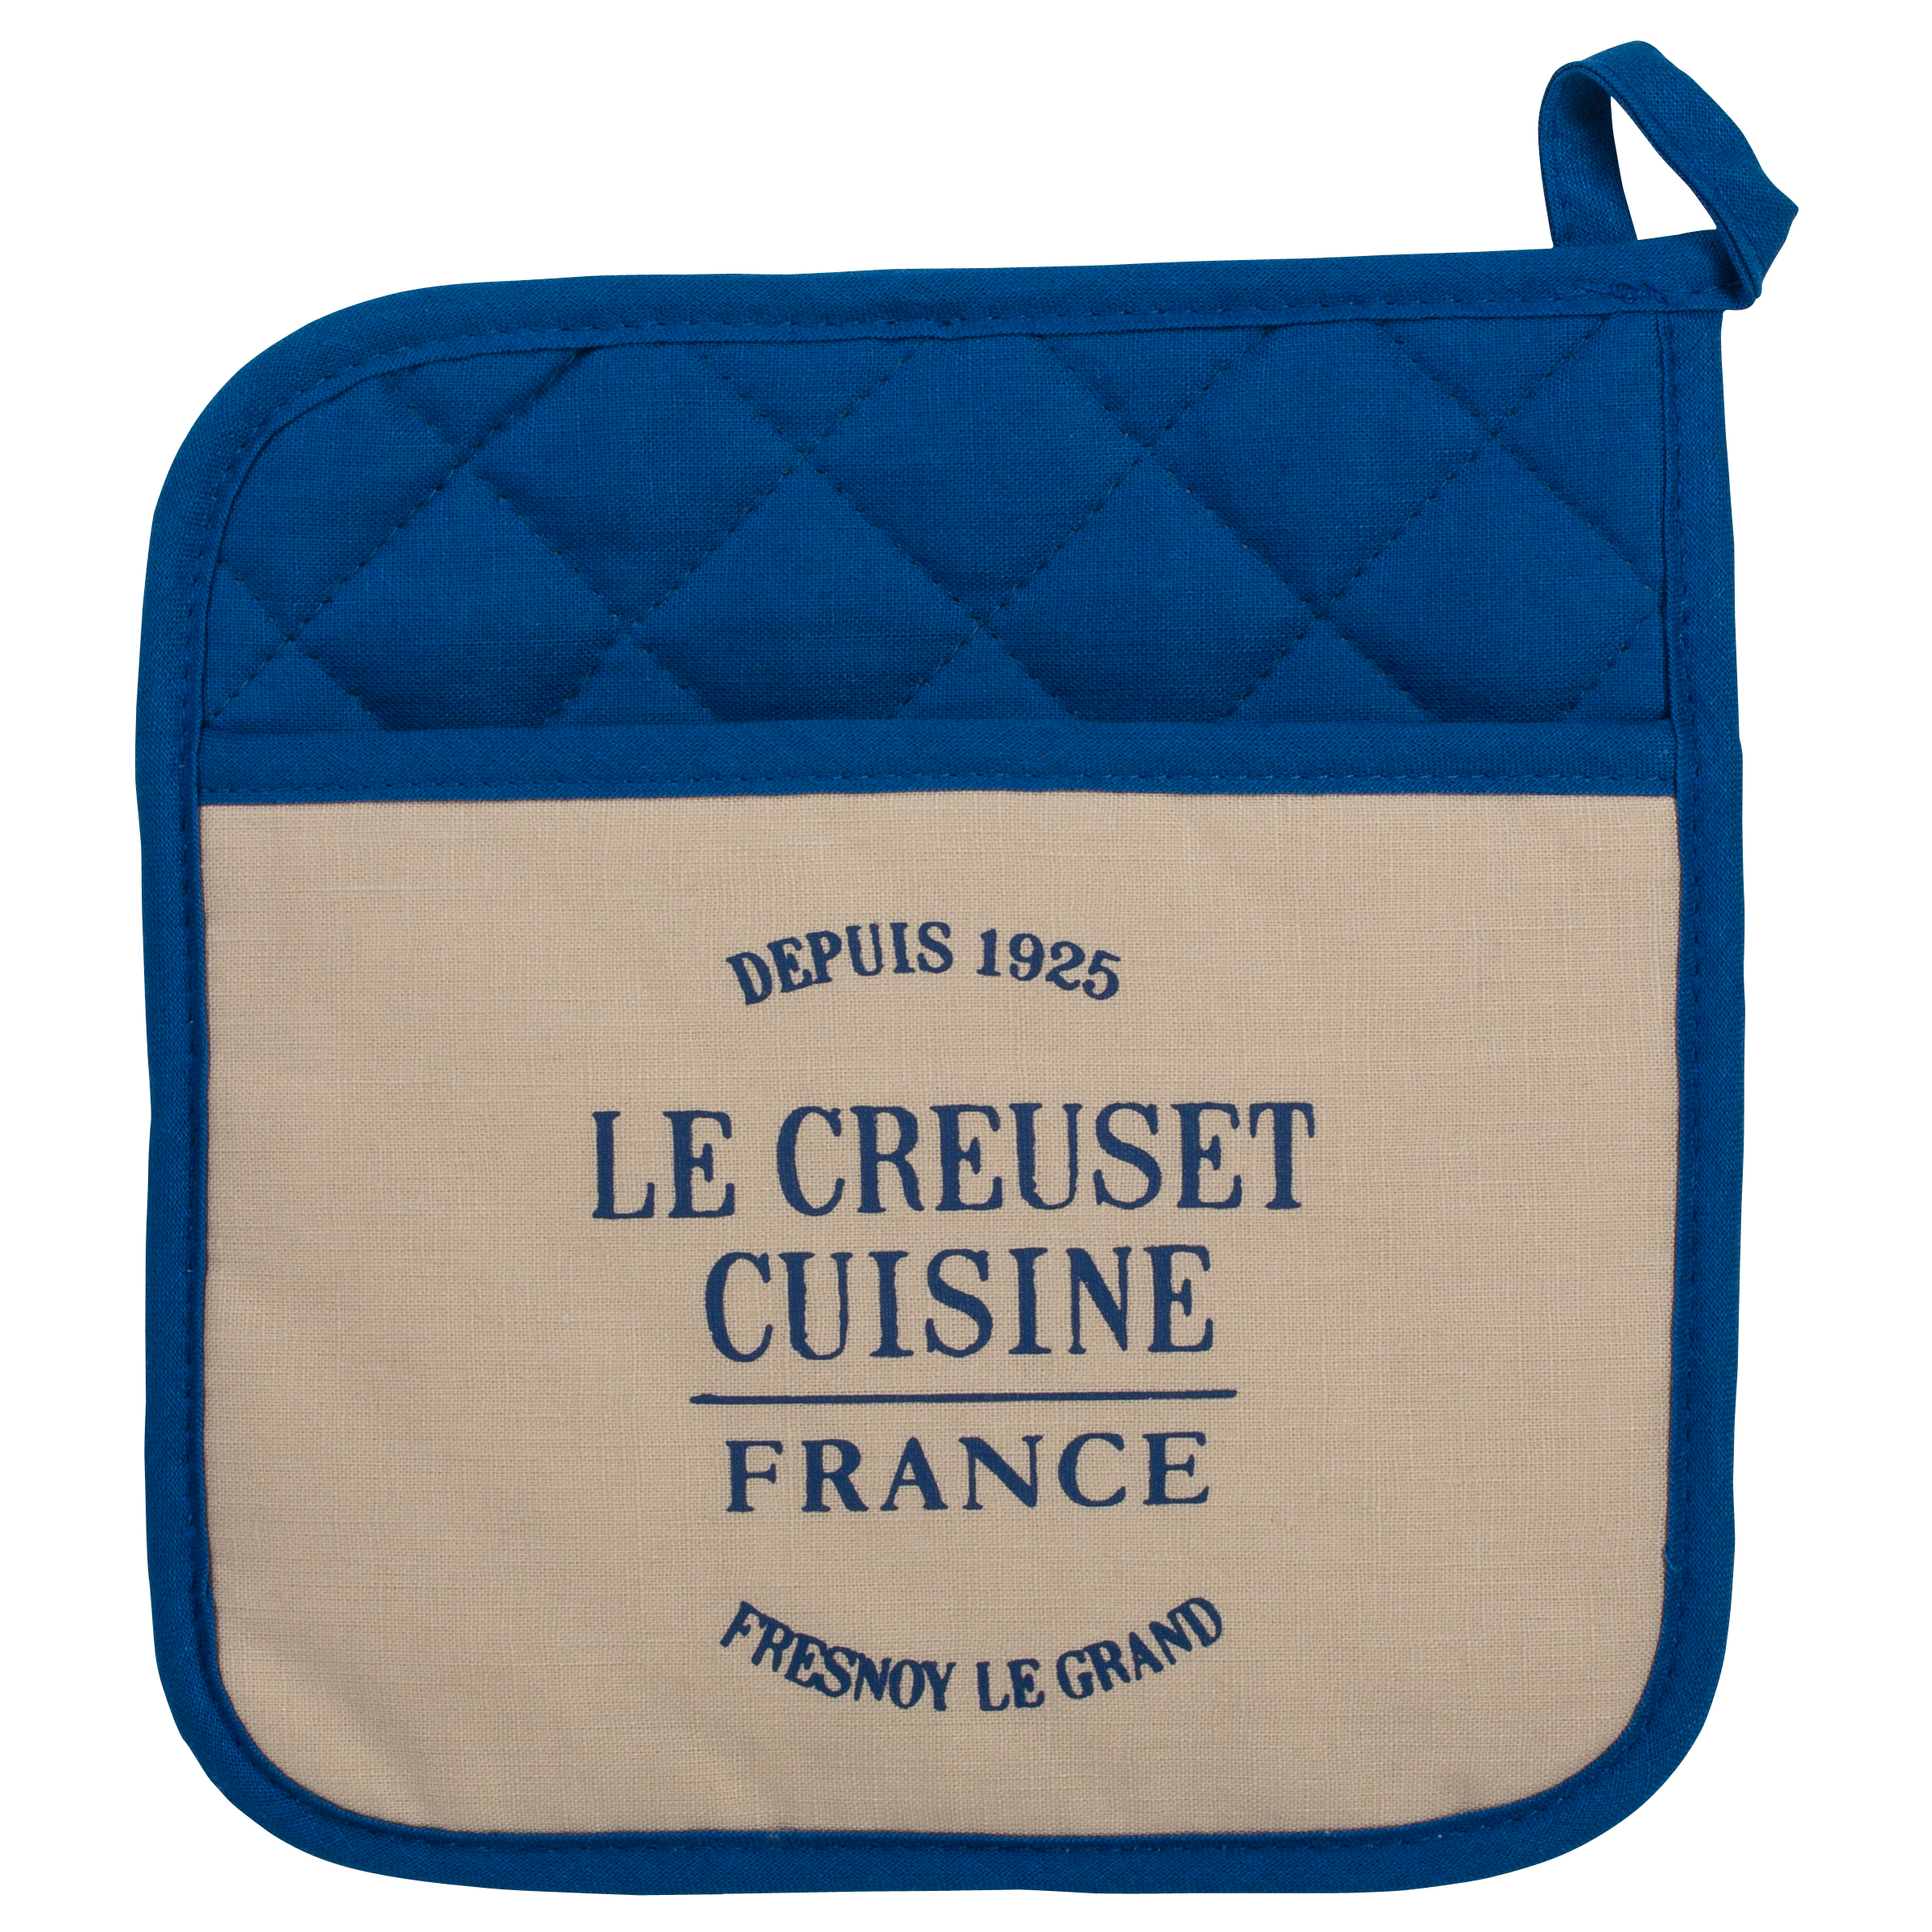 Le Creuset Heritage Marseille 9 x 9 Inch Pot Holder